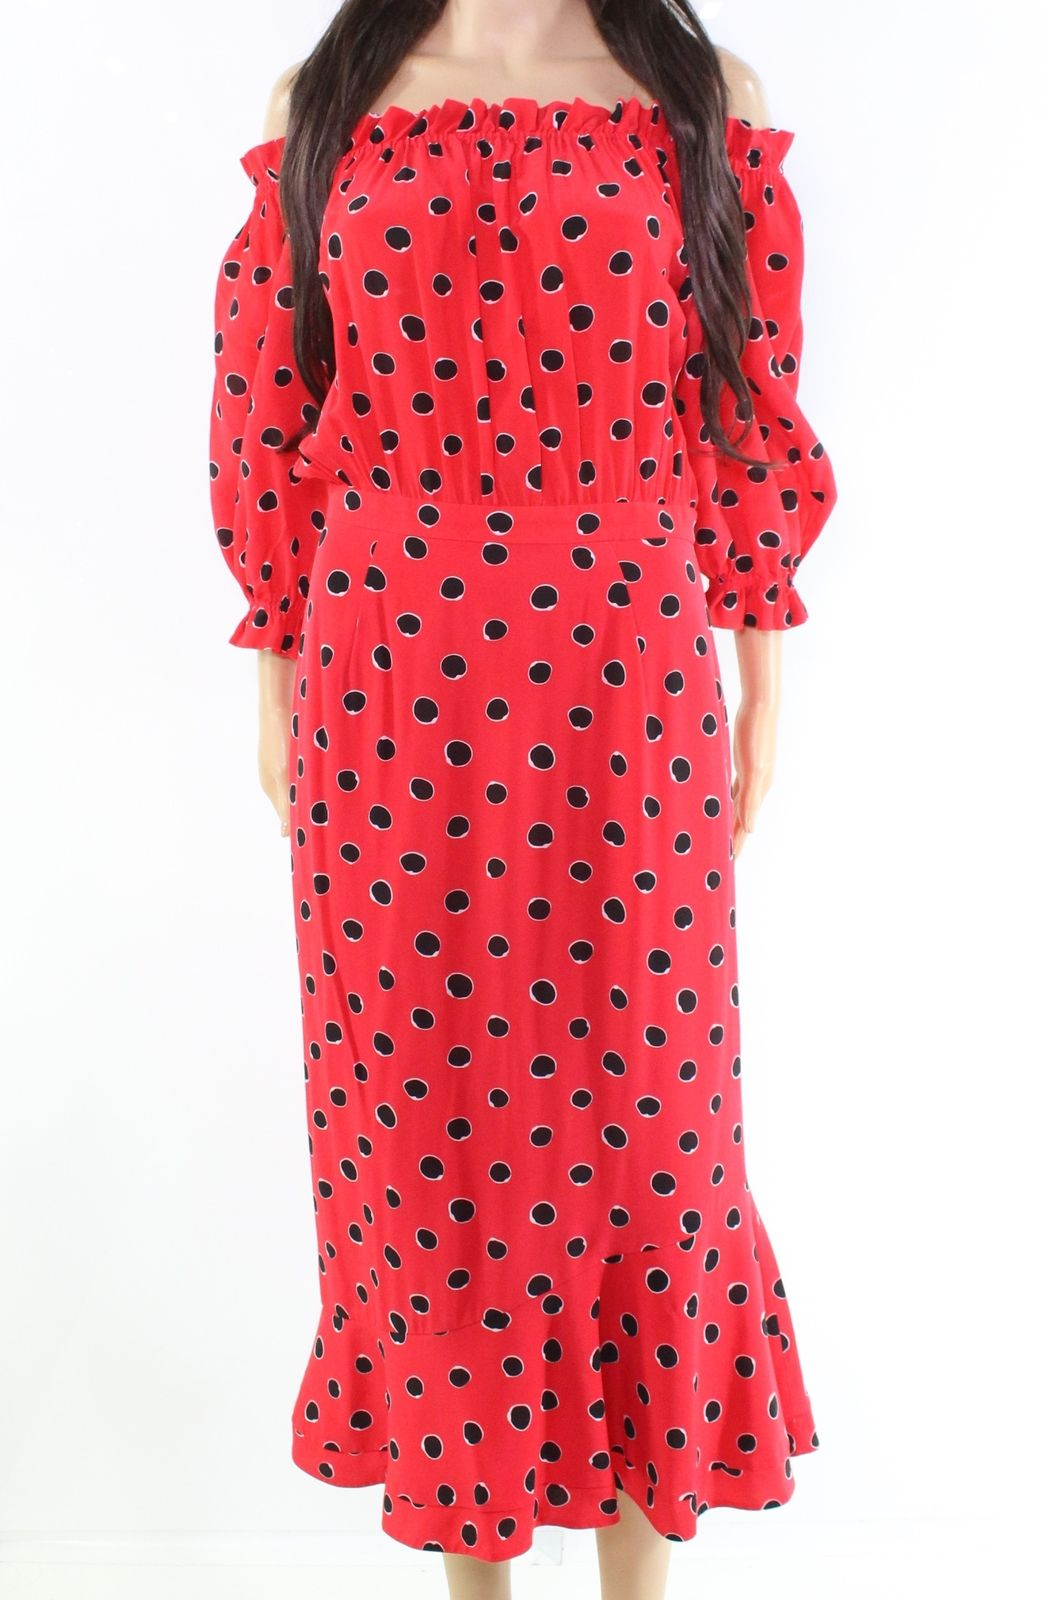 5a27de0c85 SALONI Red Women s Size 8 Off Shoulder Polka Dot Sheath Dress  695-  244